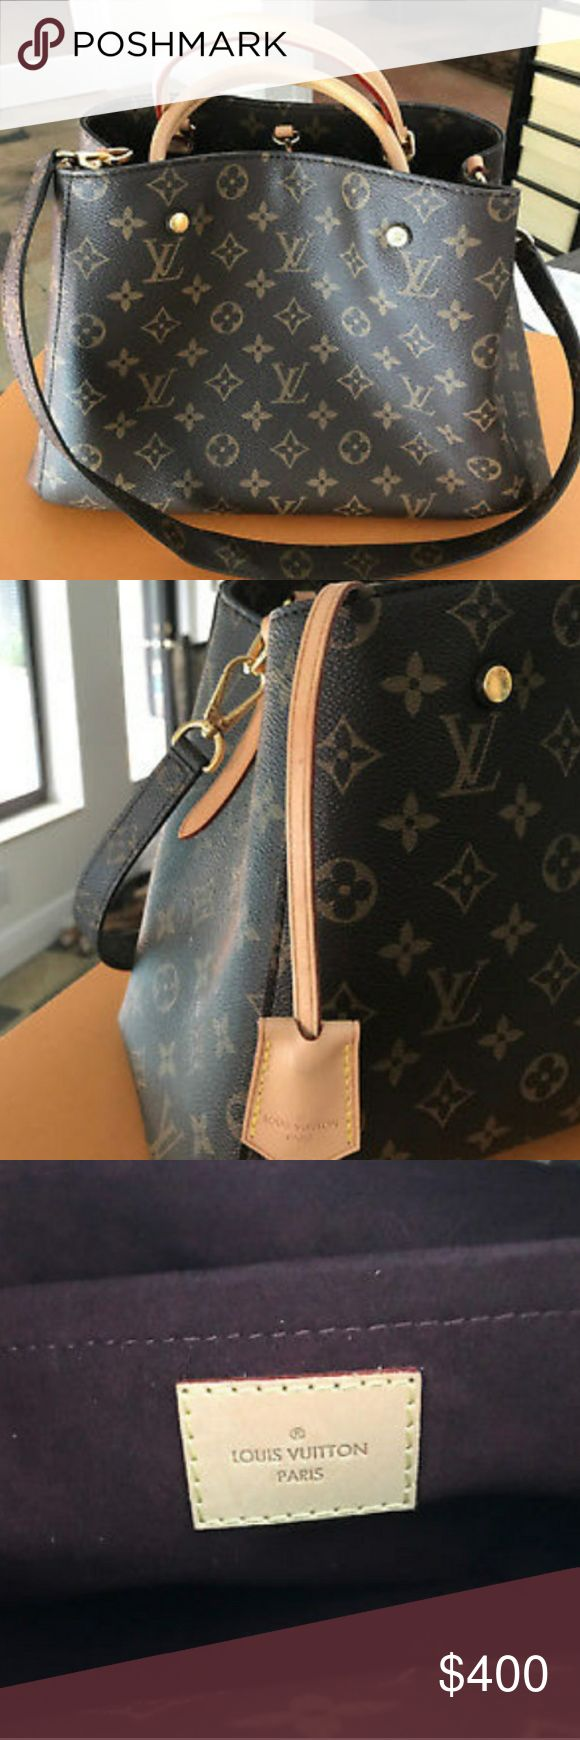 Louis Vuitton MM Canvas Monogram Leather Bag IN GREAT CONDITION , USED ONCE. HAVE ALL THE ORIGINAL TAGS, BOXES, DUST BAG AND RECEIPT.  PURCHASED AS A CHRISTMAS PRESENT LAST YEAR.  PRISTINE CONDITION HAS SAT IN IT'S ORIGINAL BOX ALL YEAR. SMOKE FREE HOME.. SERIAL NUMBER -SD4176 Louis Vuitton Bags Shoulder Bags